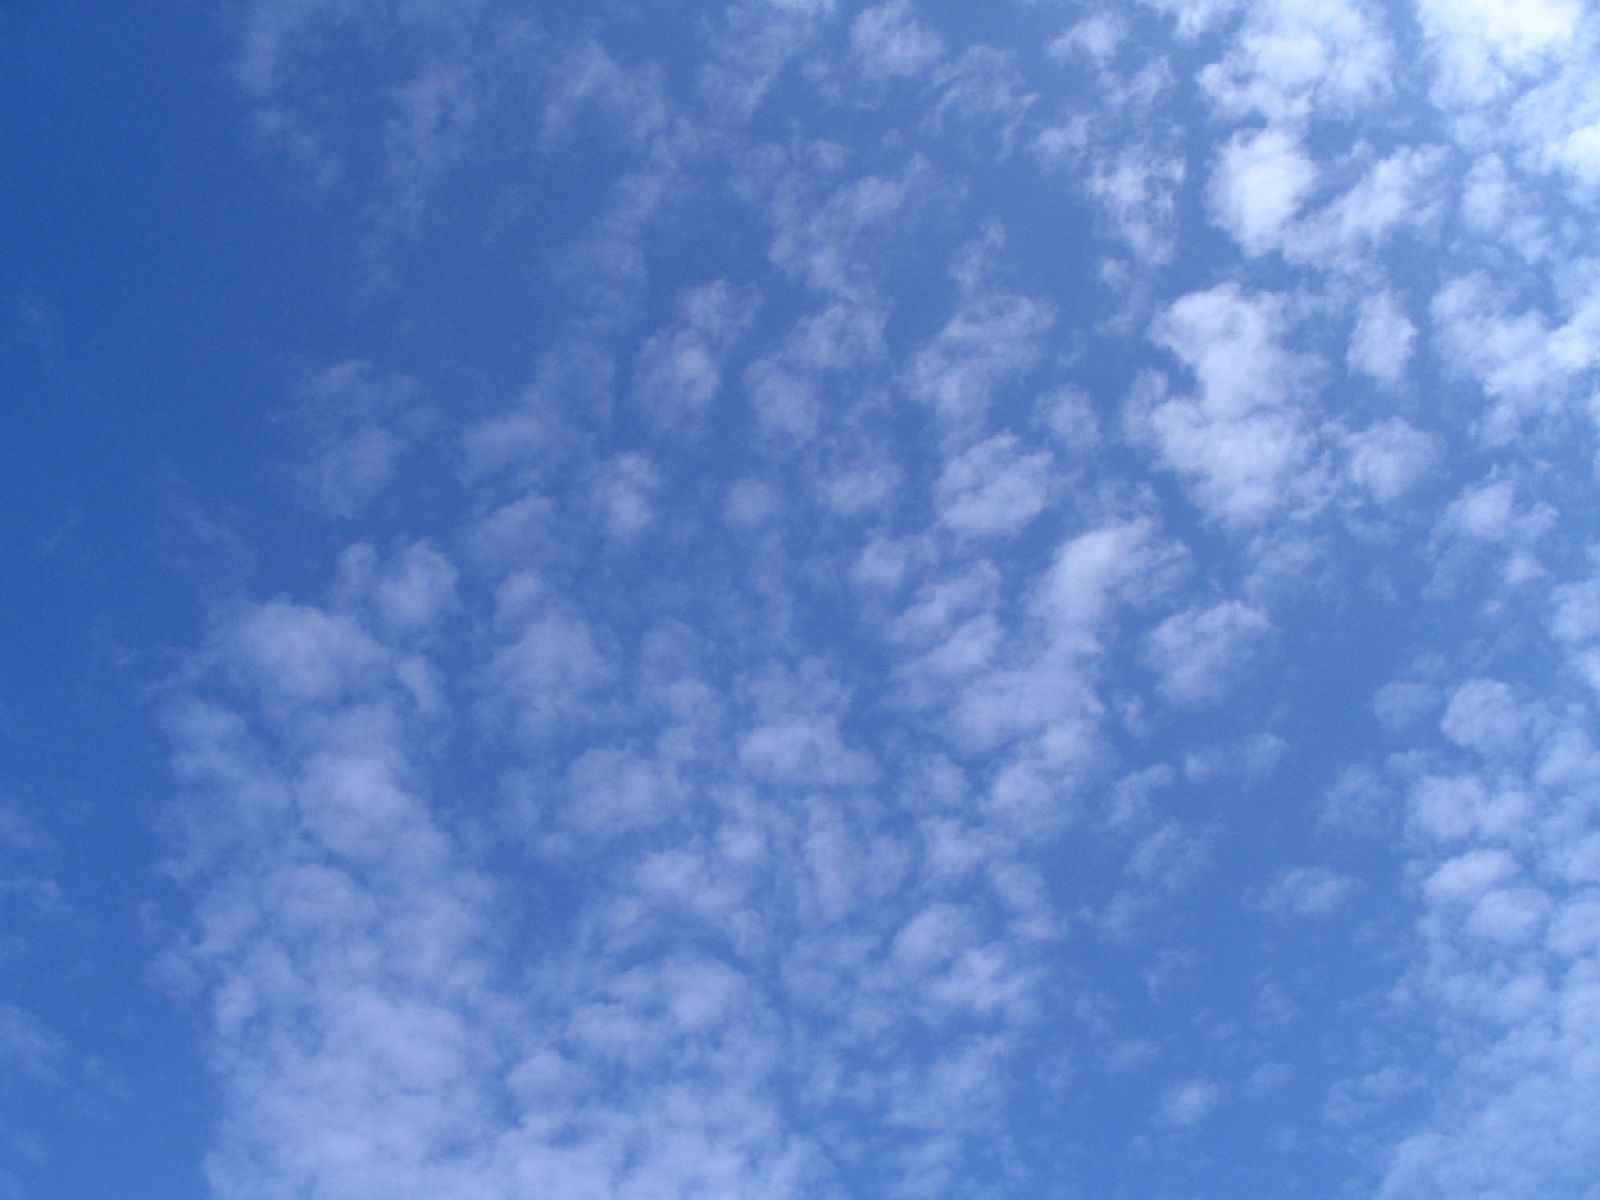 Sky_Clouds_Photo_Texture_B_1902